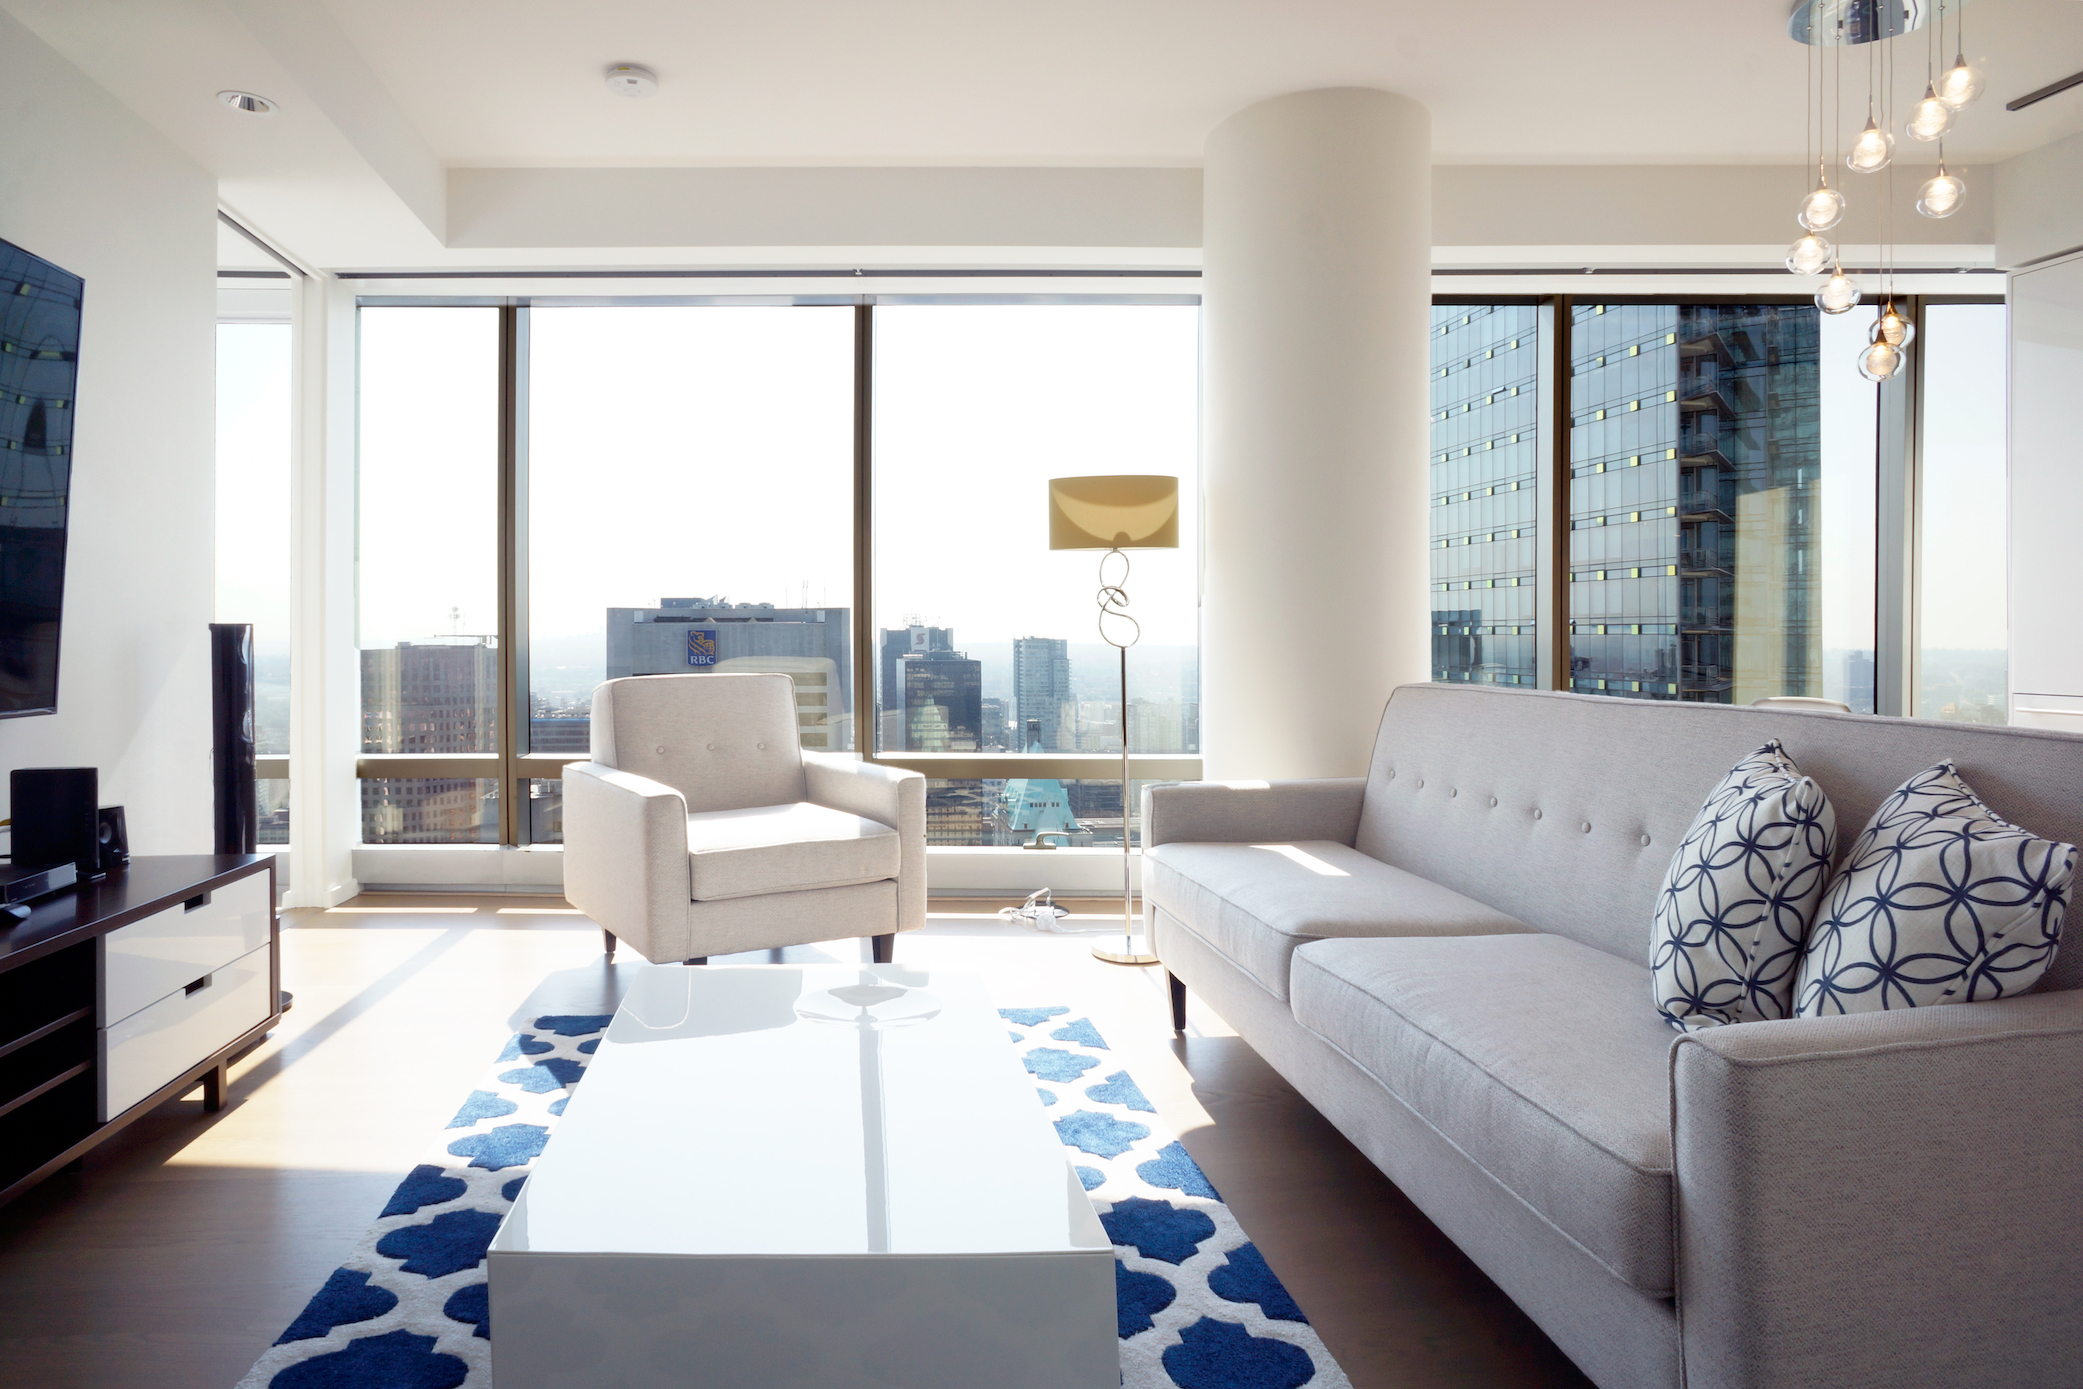 FURNISHED ONE BEDROOM AND DEN PROPERTY IN THE LUXURIOUS TRUMP RESIDENCES VANCOUVER